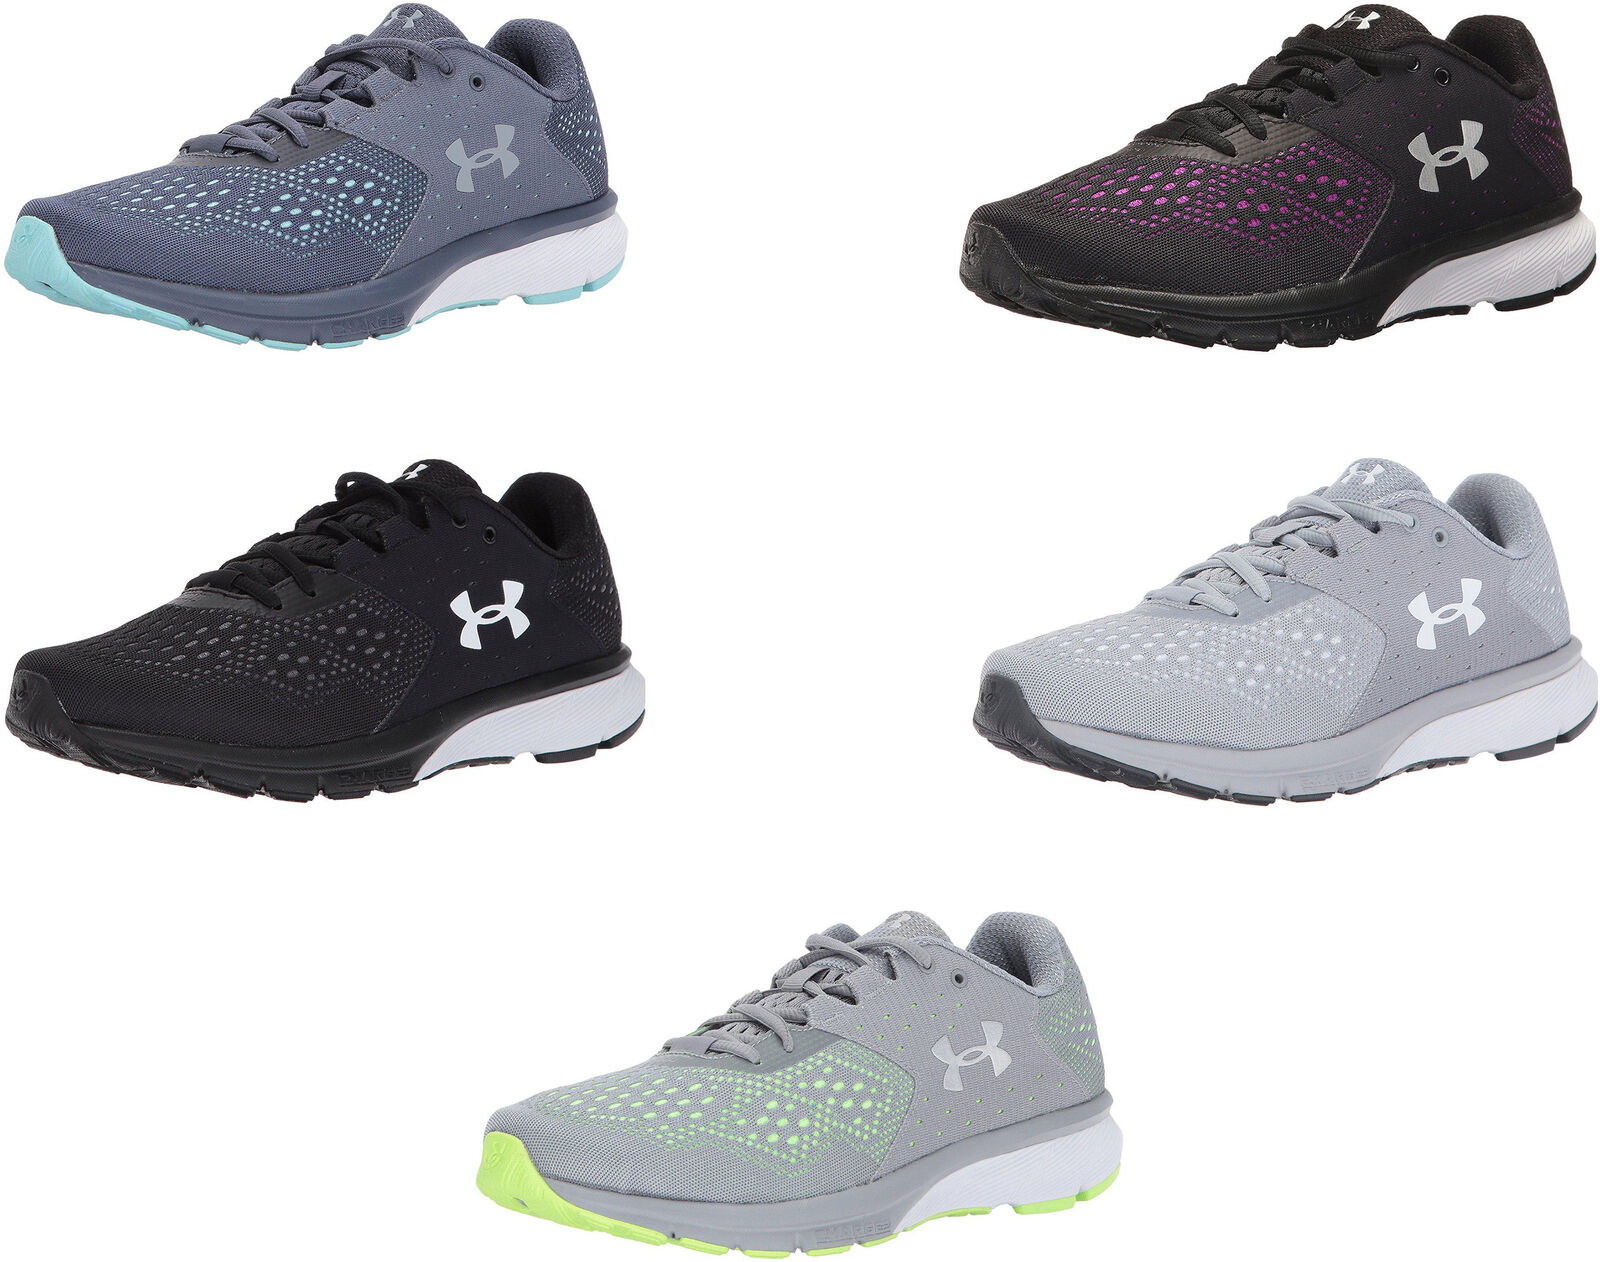 Under Armour Women's Charged Rebel Shoes, 5 Colors